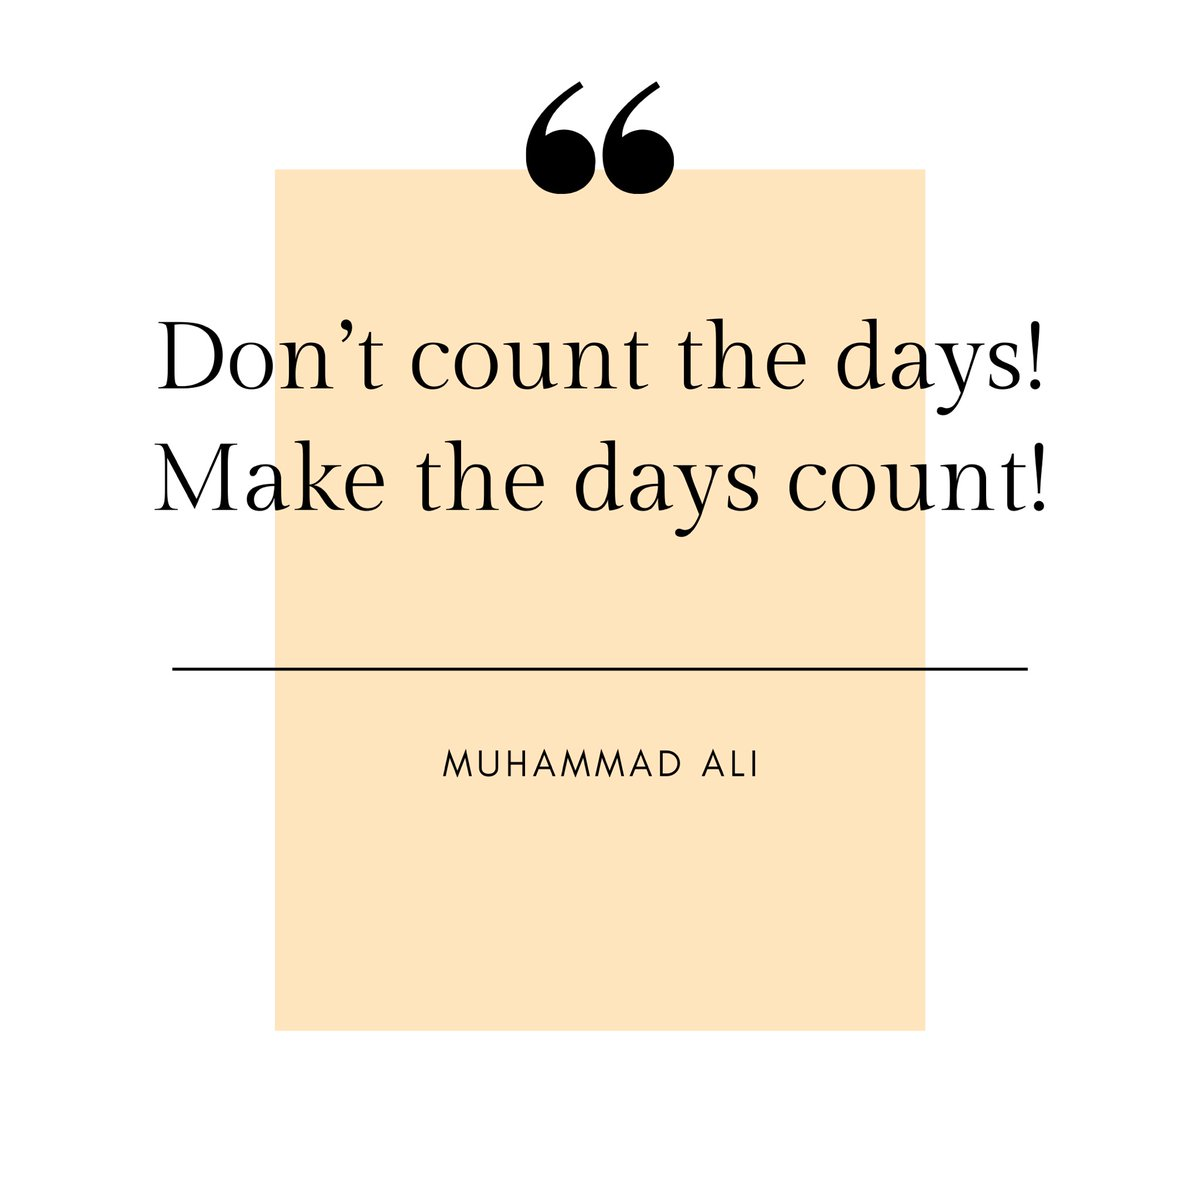 """Muhammad Ali was known as """"The Greatest"""" not because he was a great #boxer but also a true #inspiration to everyone around him. His #dedication to living like a #champion and never giving up continued till he died🌟 . . . . #nevergiveup #alwayskeeptrying #lifeisprecious #champs https://t.co/2YOWtktJ2U"""